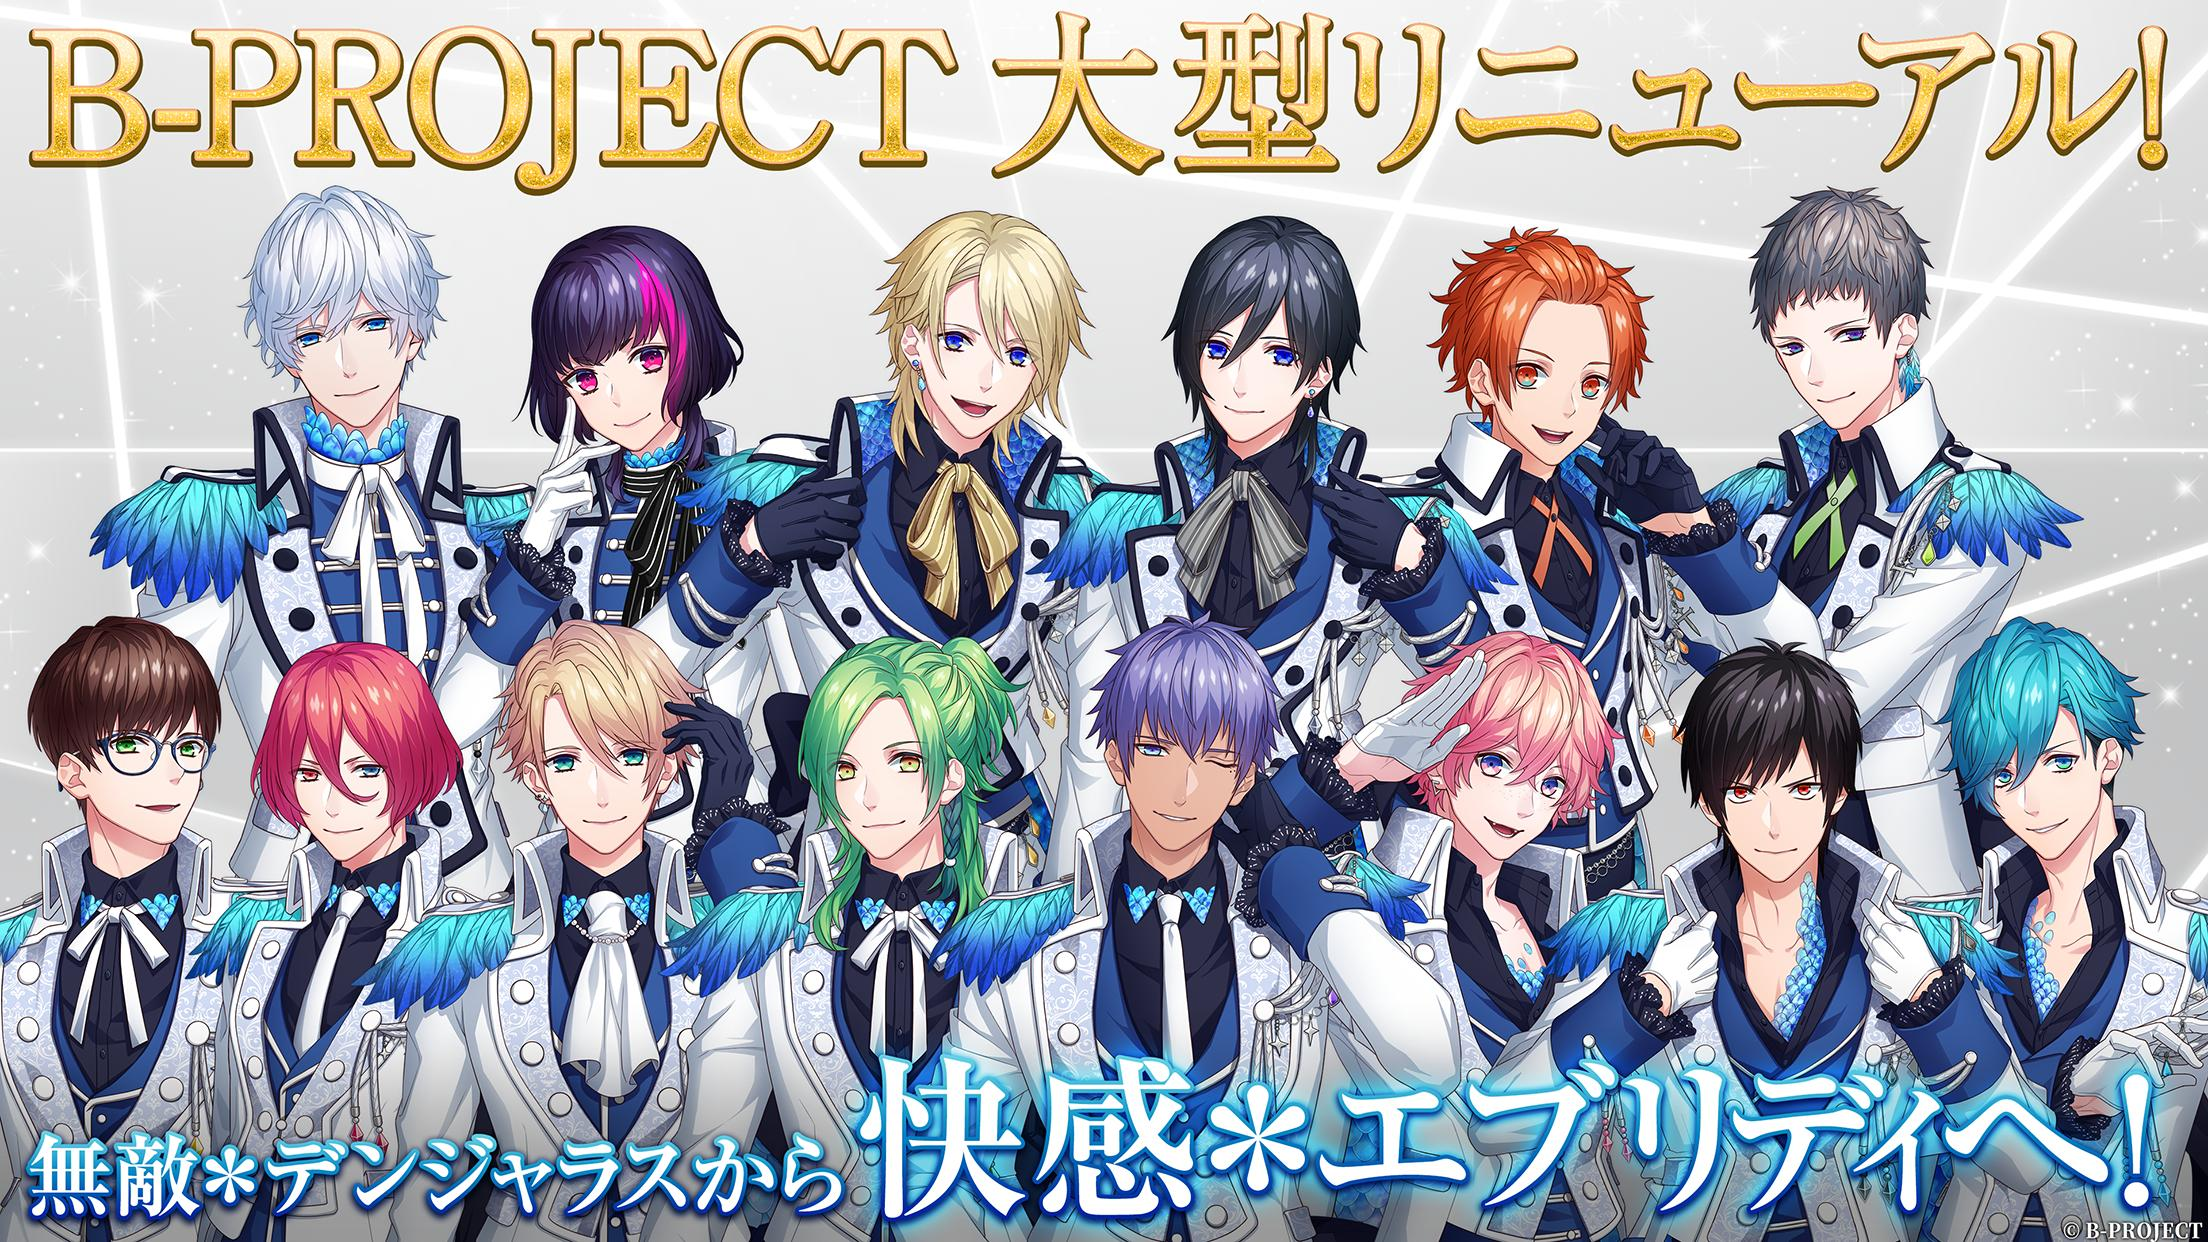 B-PROJECT 快感*エブリディ for Android - APK Download